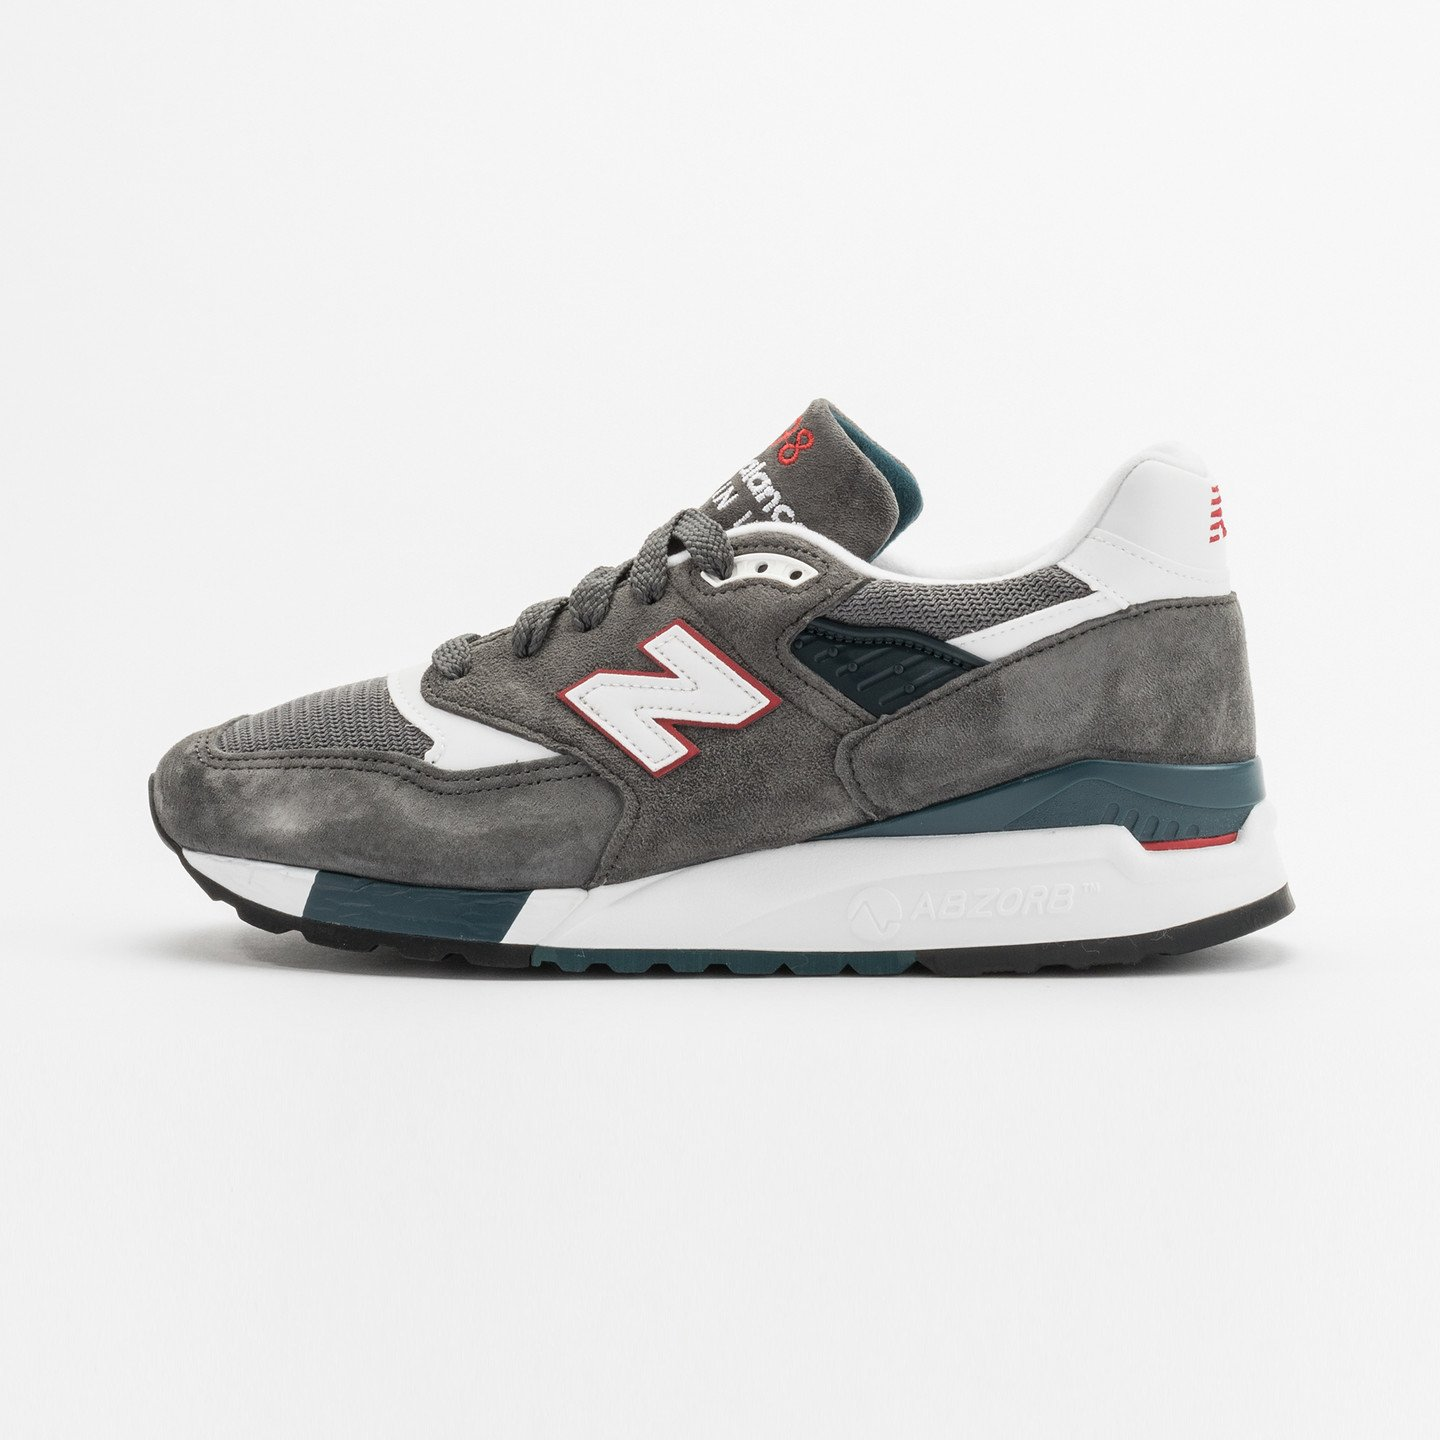 New Balance M998 CRA - Made in USA Granite Grey / White / Red M998CRA-44